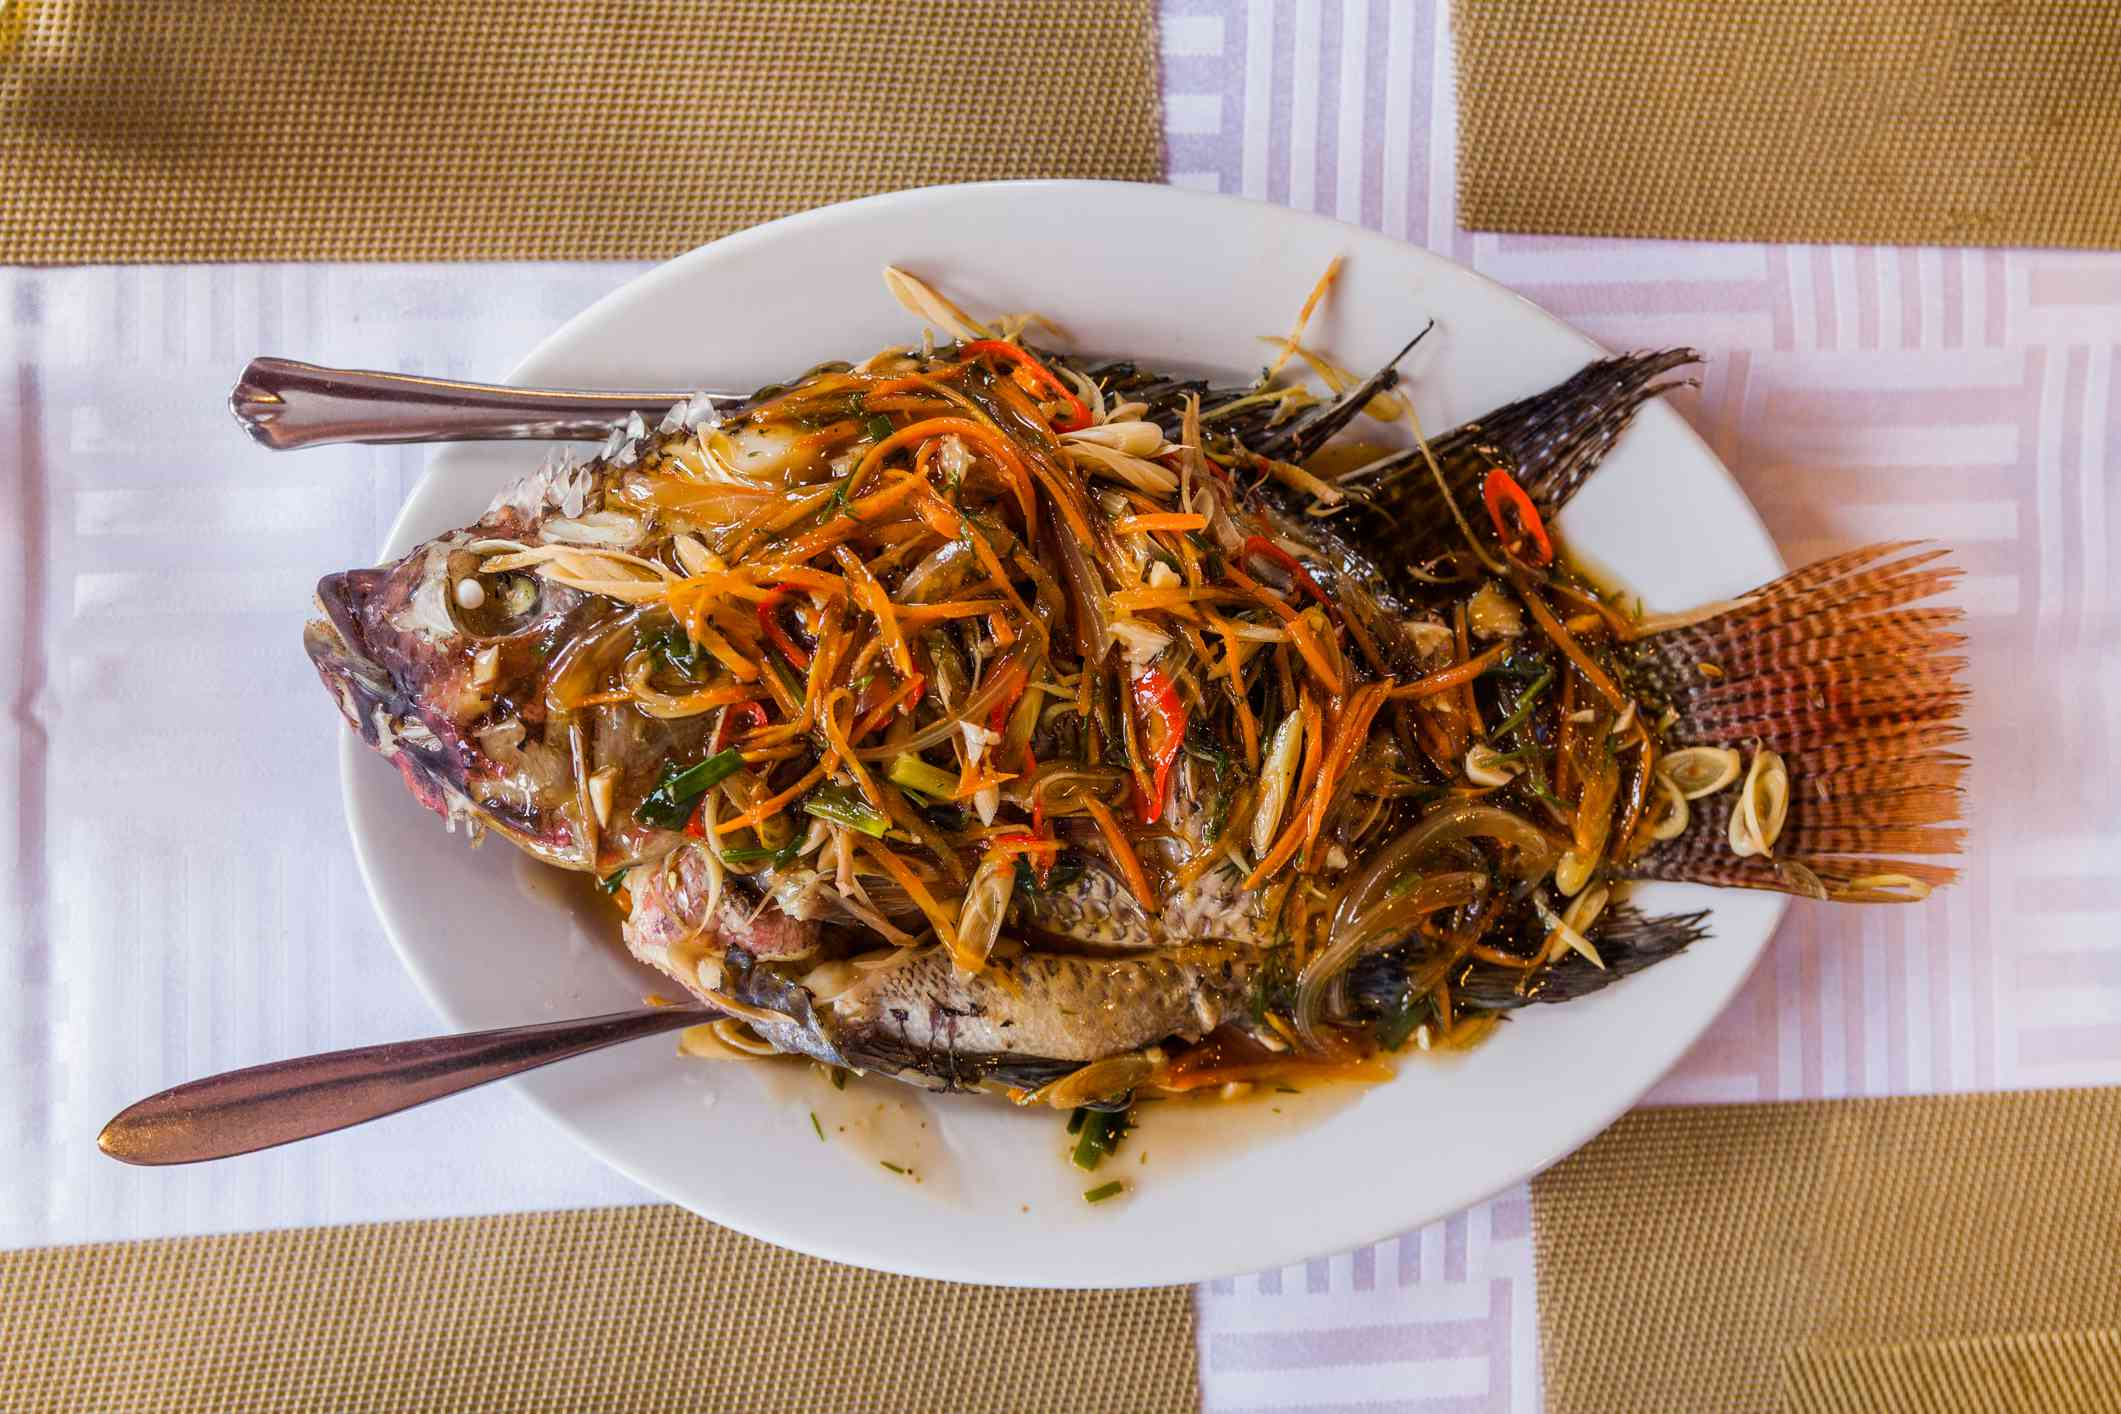 Grilled fish with spices and herbs